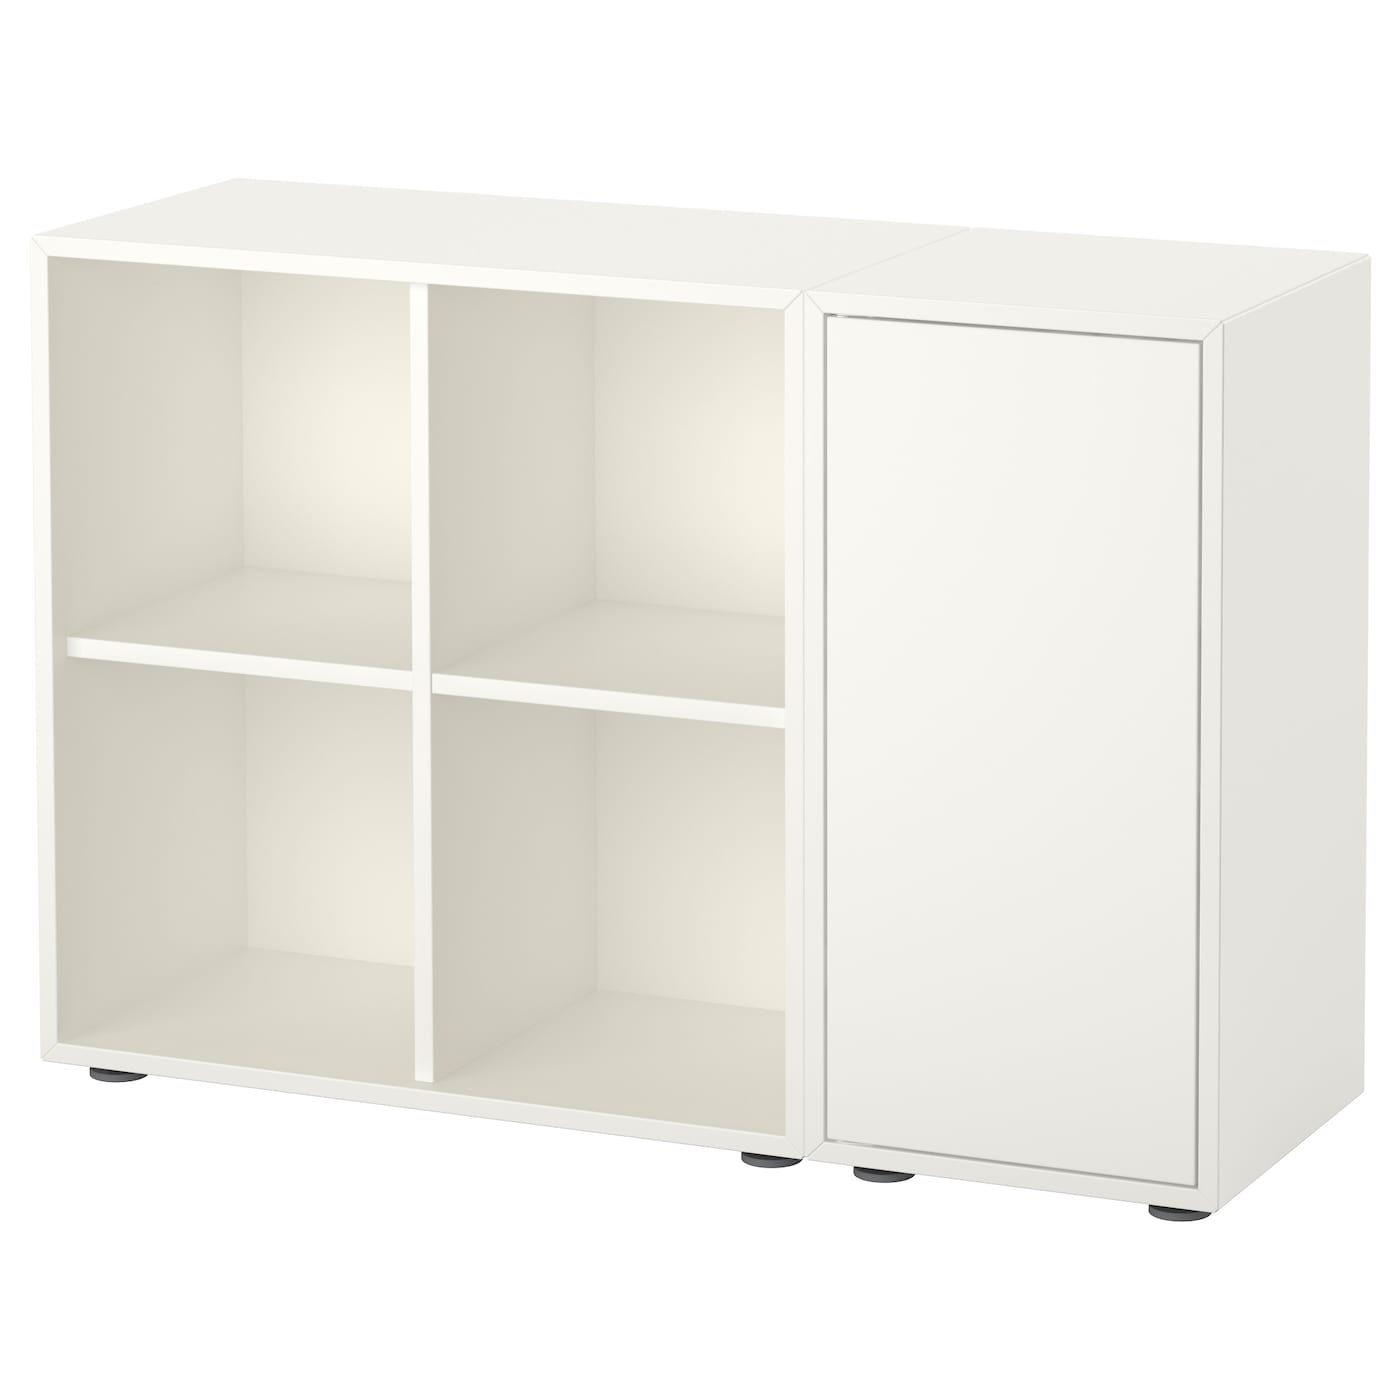 eket cabinet combination with feet white 105 x 35 x 72 cm ikea. Black Bedroom Furniture Sets. Home Design Ideas